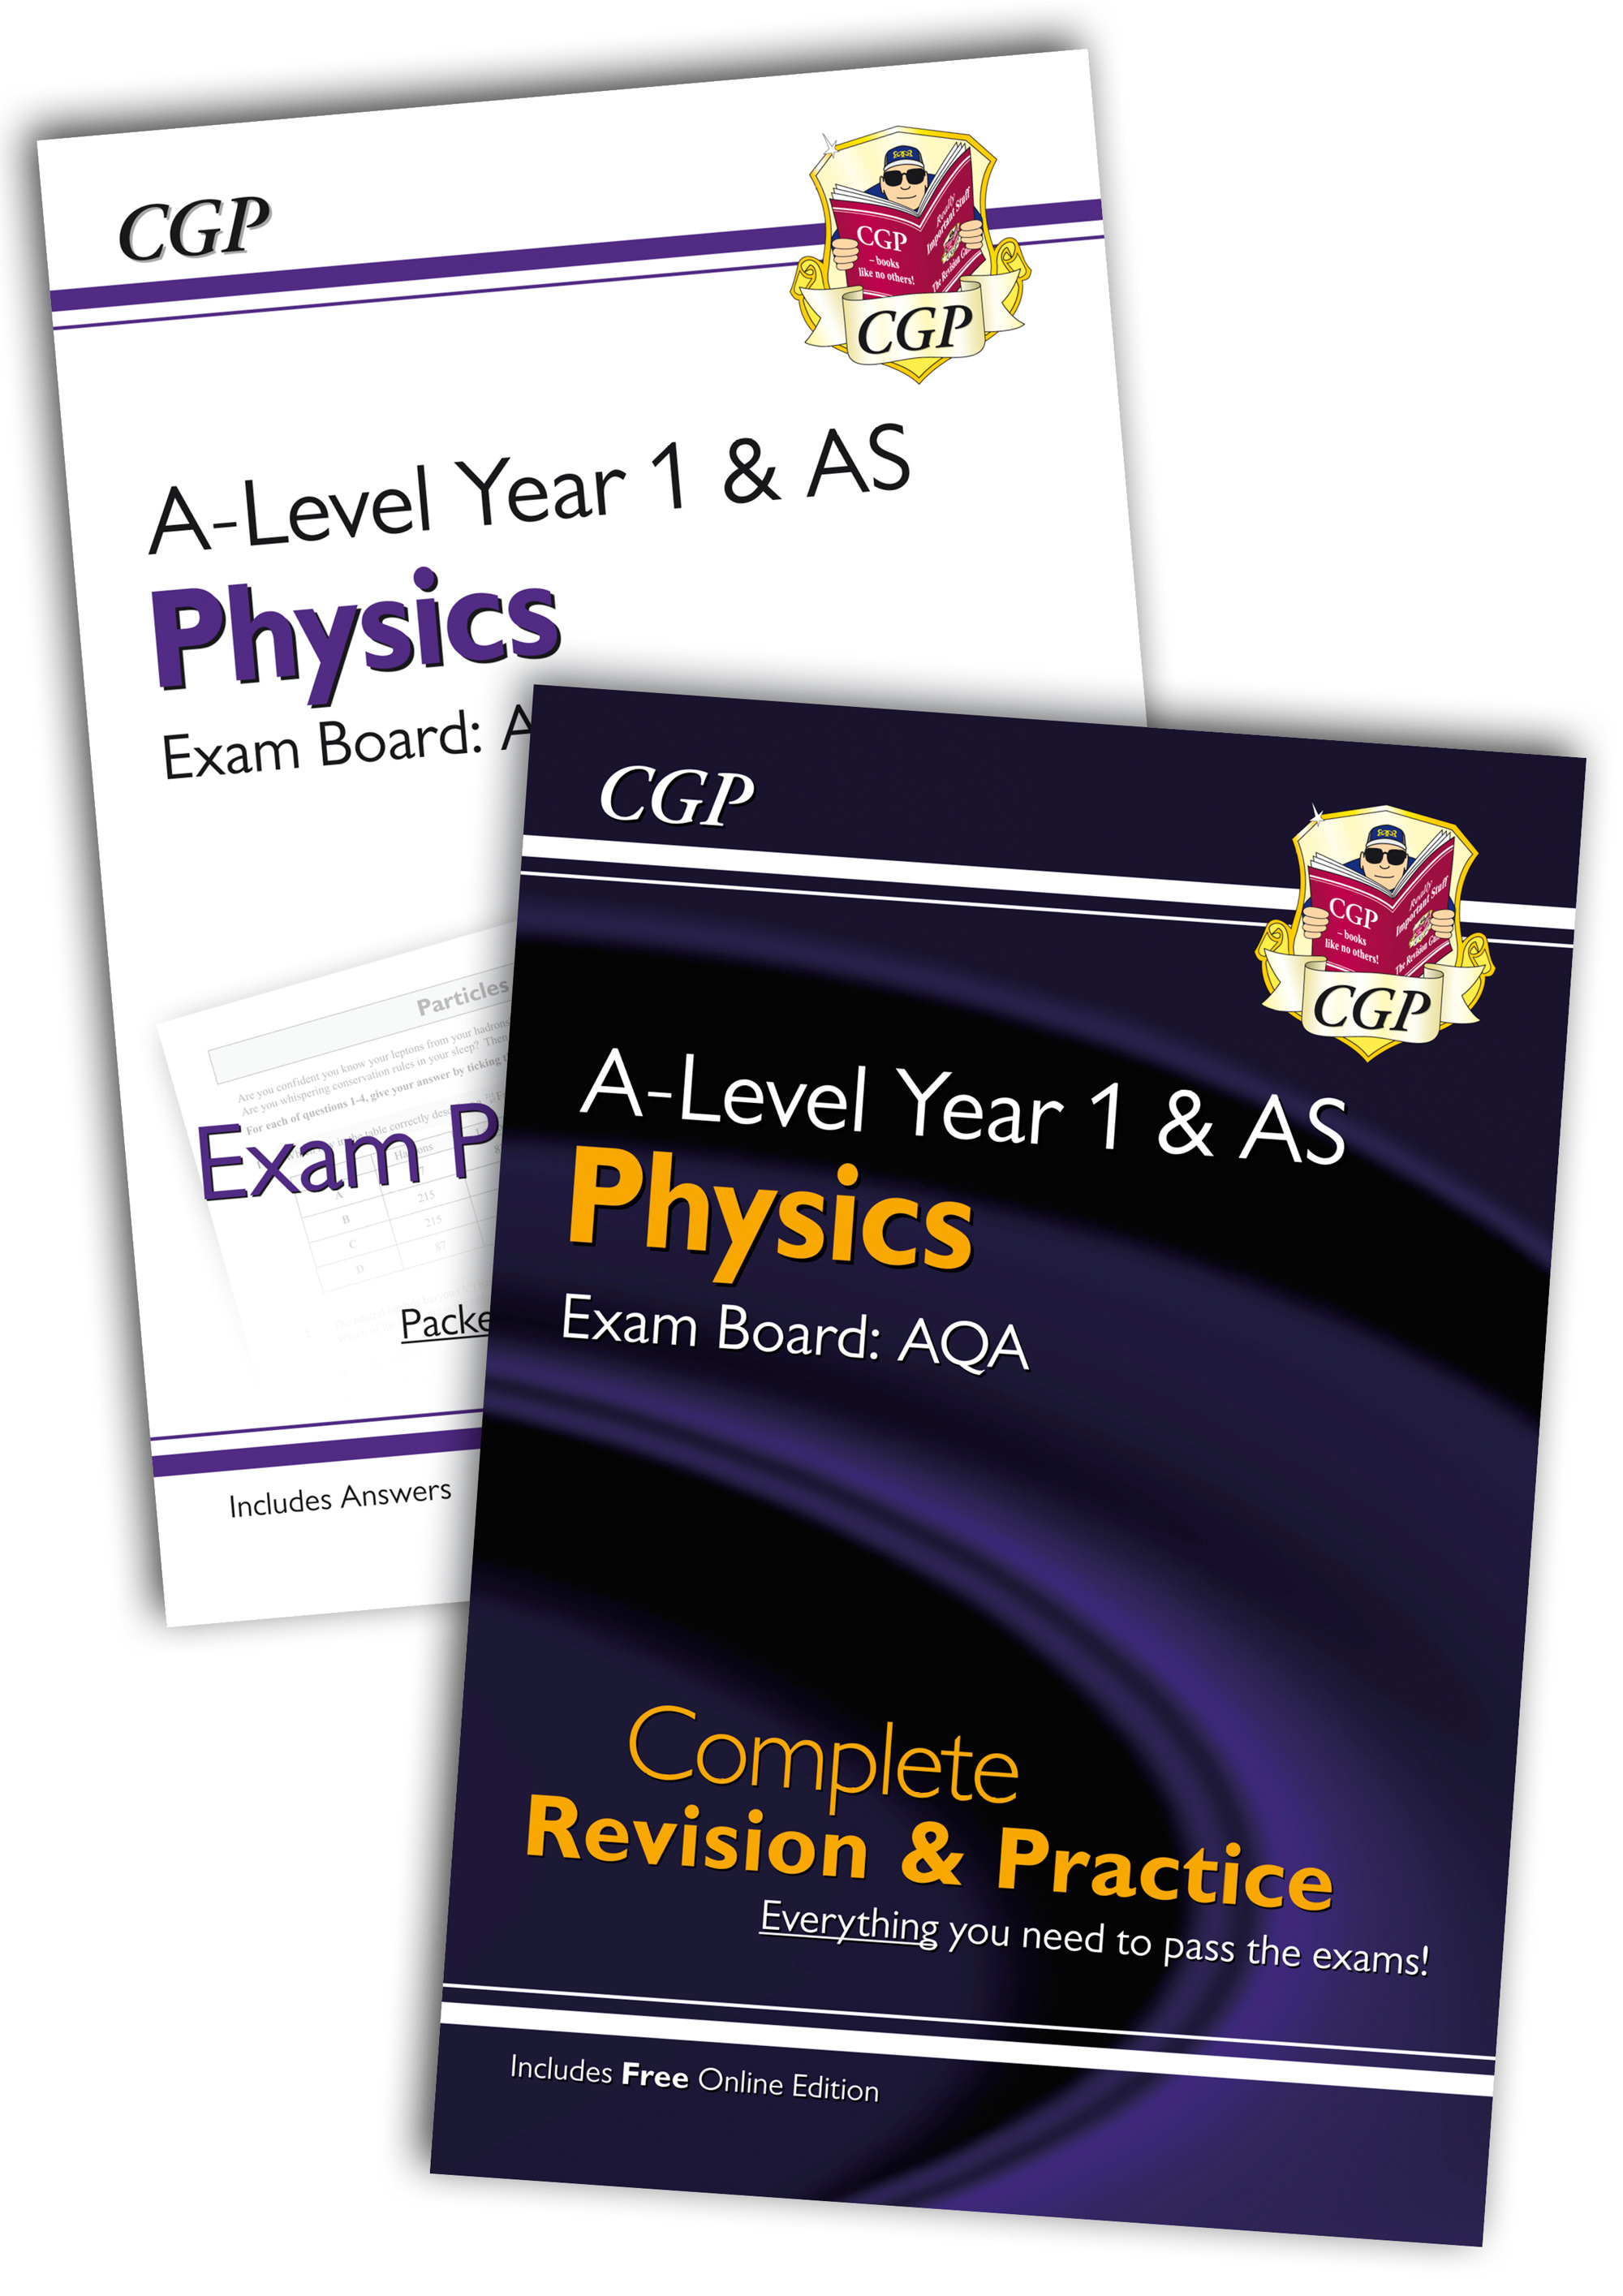 PARQB51 - Complete Revision and Exam Practice A-Level Physics Bundle: AQA Year 1 & AS